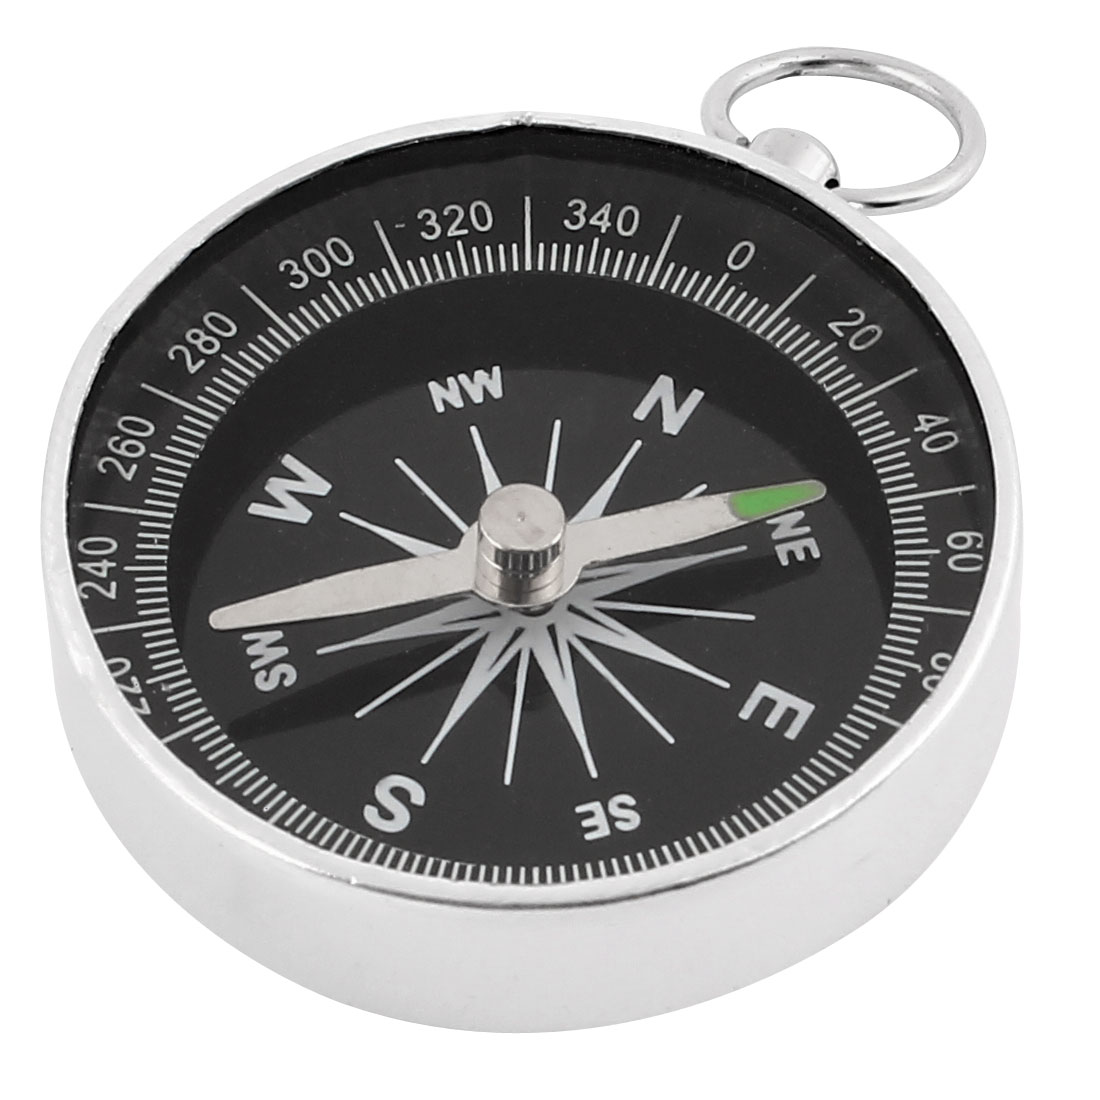 Portable Silver Tone Plastic Casing Black Dial Hiking Camping Compass